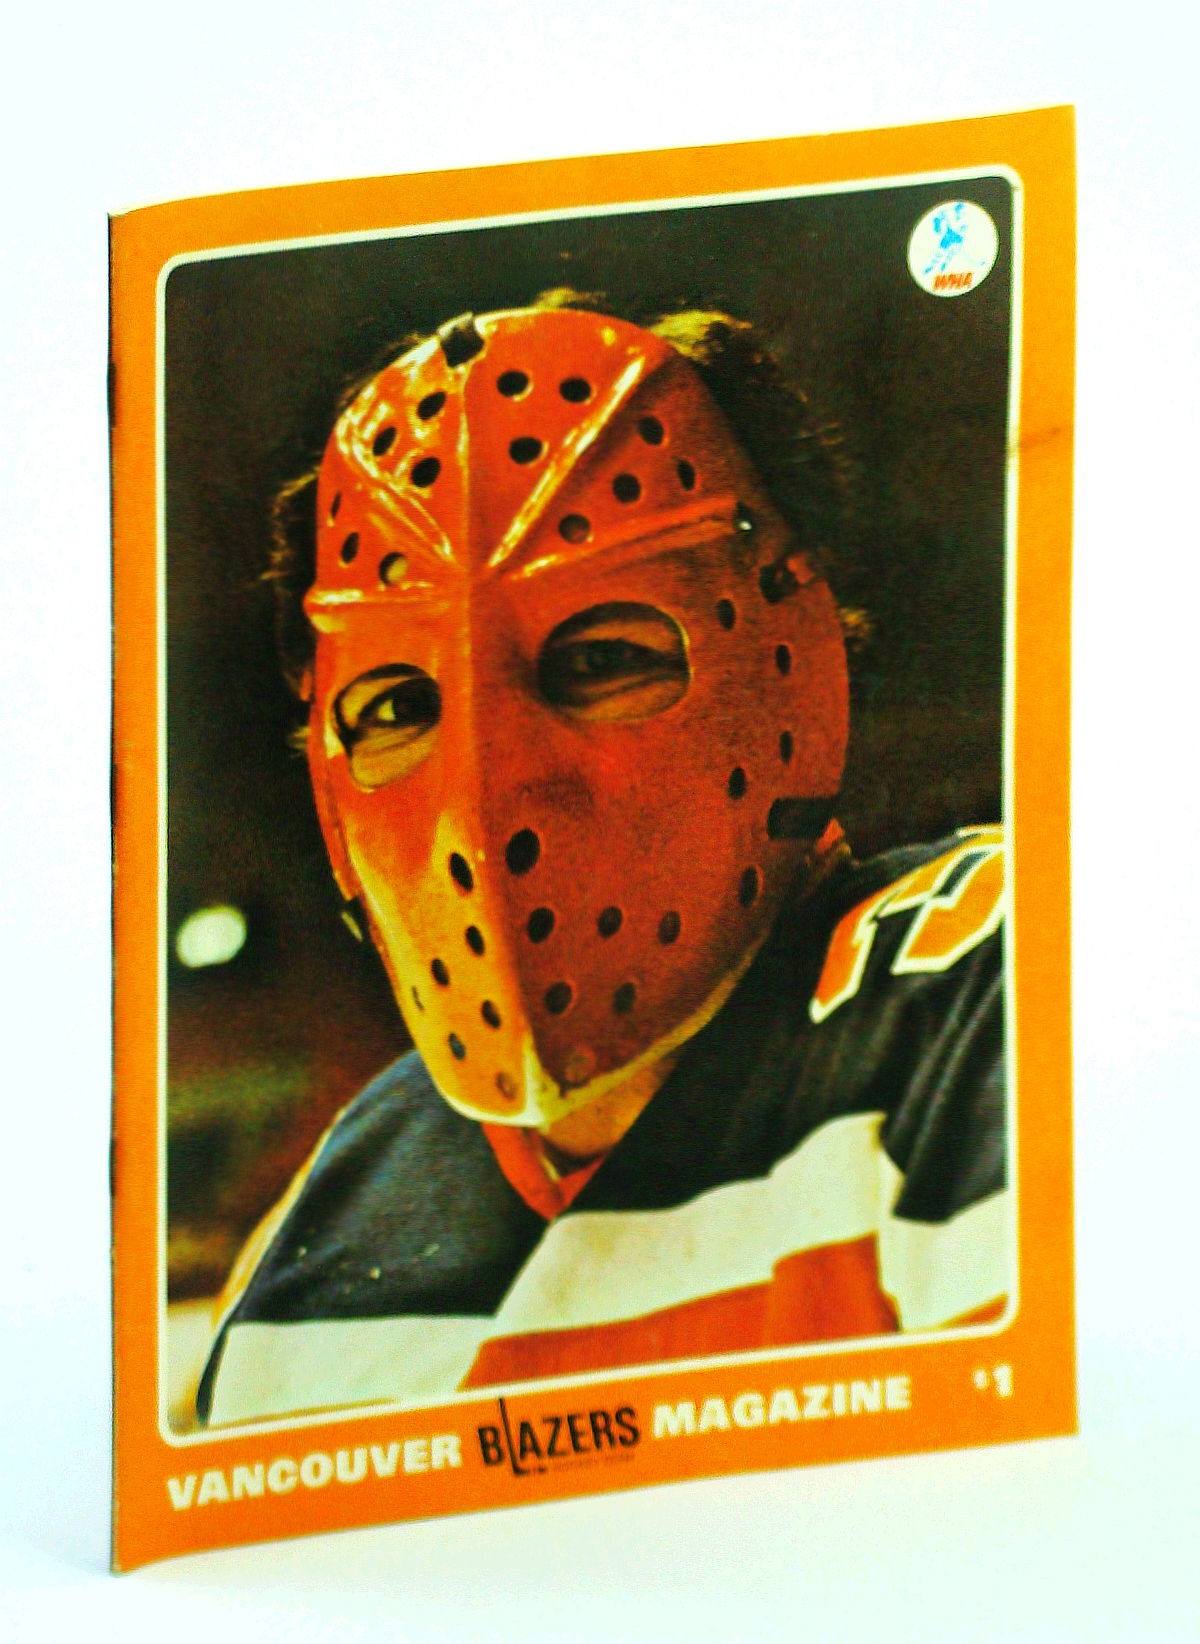 Image for Vancouver Blazers Magazine, Volume II, Issue No. 20, January 2, 1975 : Cover Photo of Phoenix Goalie Jack Norris Wearing Mask